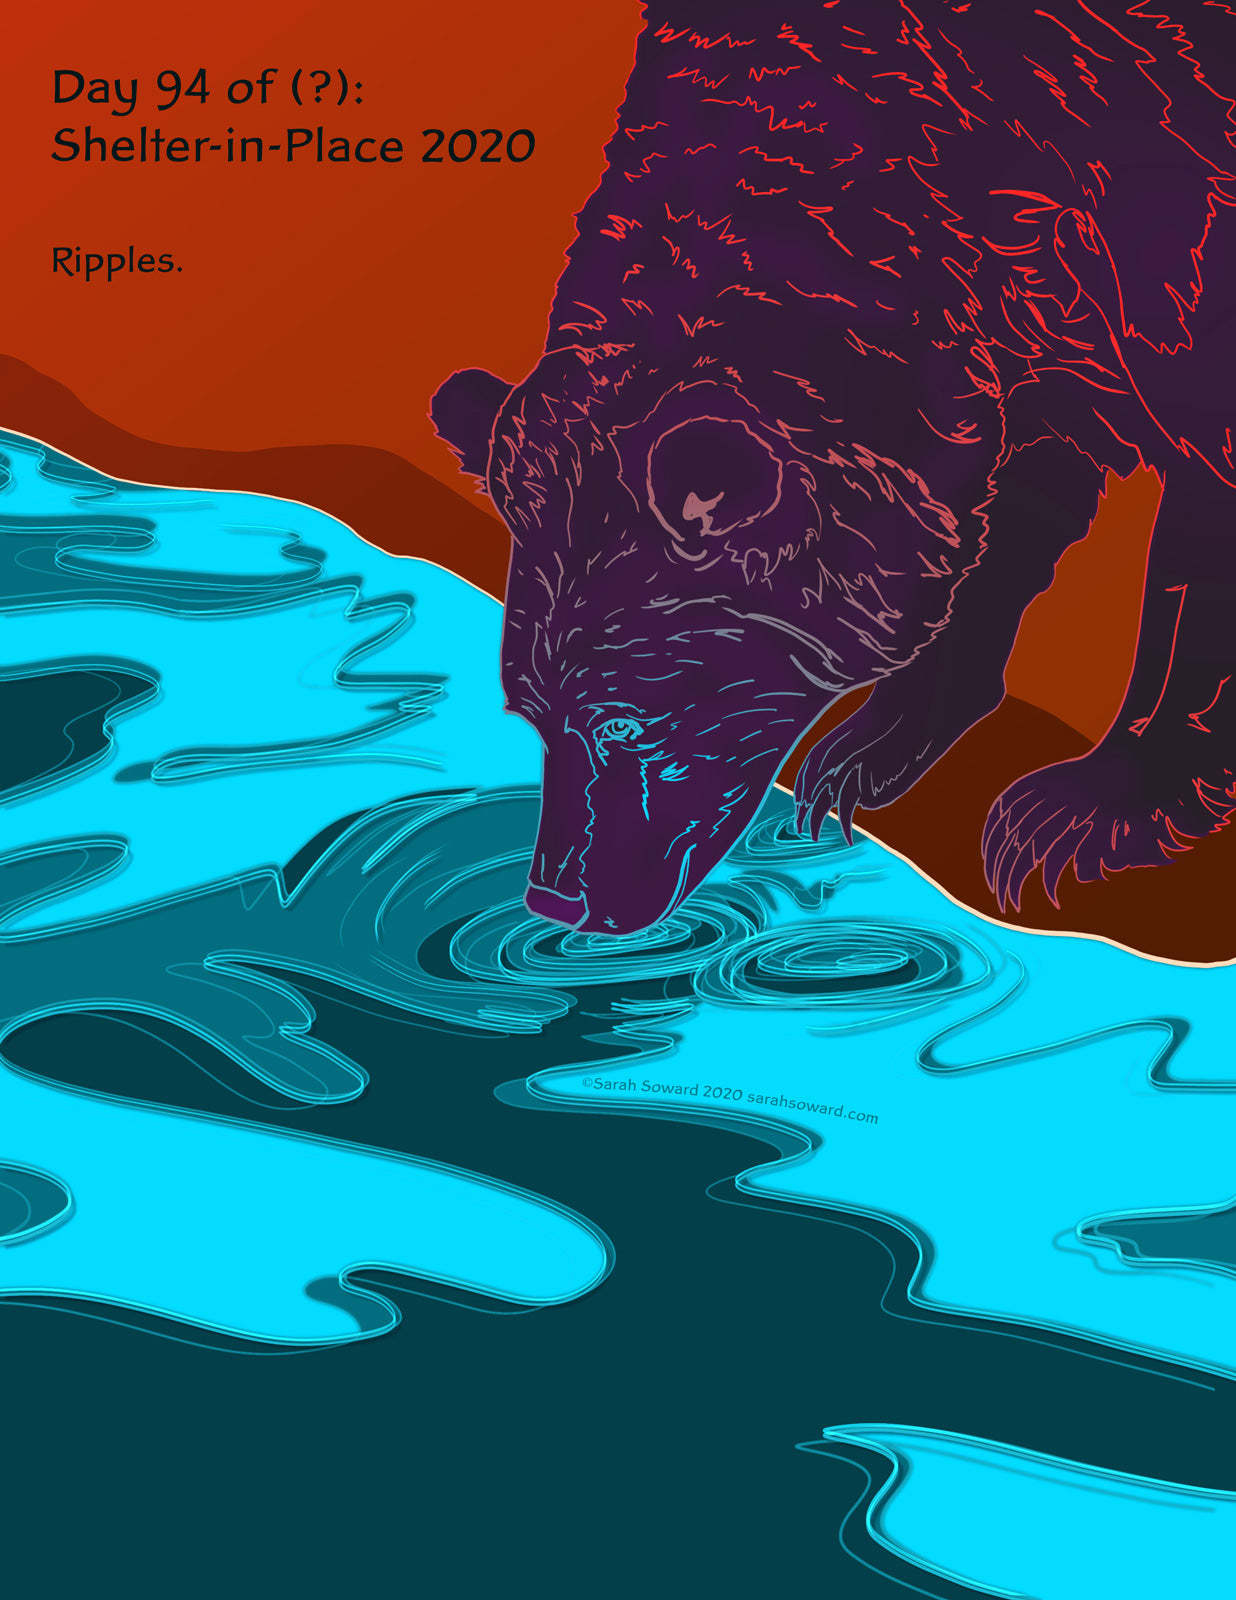 Image of a bear poking its nose into the edge of a river. The bear is purple, with contour lines gradating from blue to red as they get farther from the river. The text on the image reads, ripples.